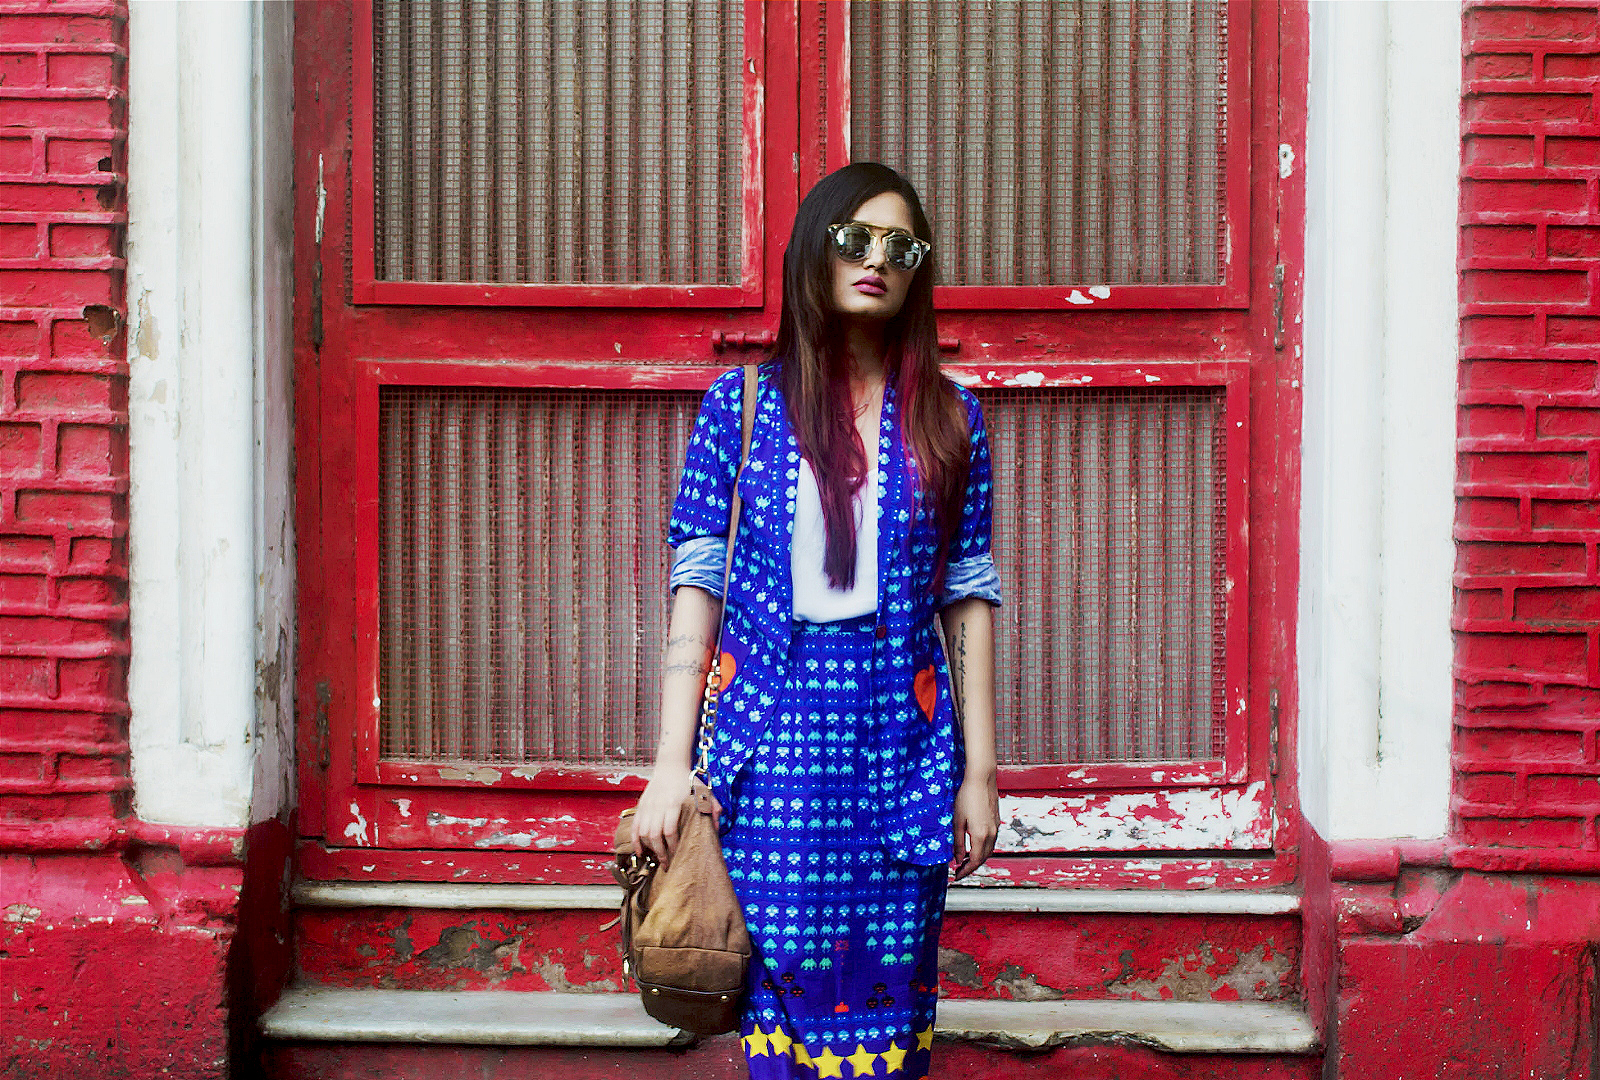 The-Chic-Armoire-by-Nidhi-Kunder-Nakita-Singh-4